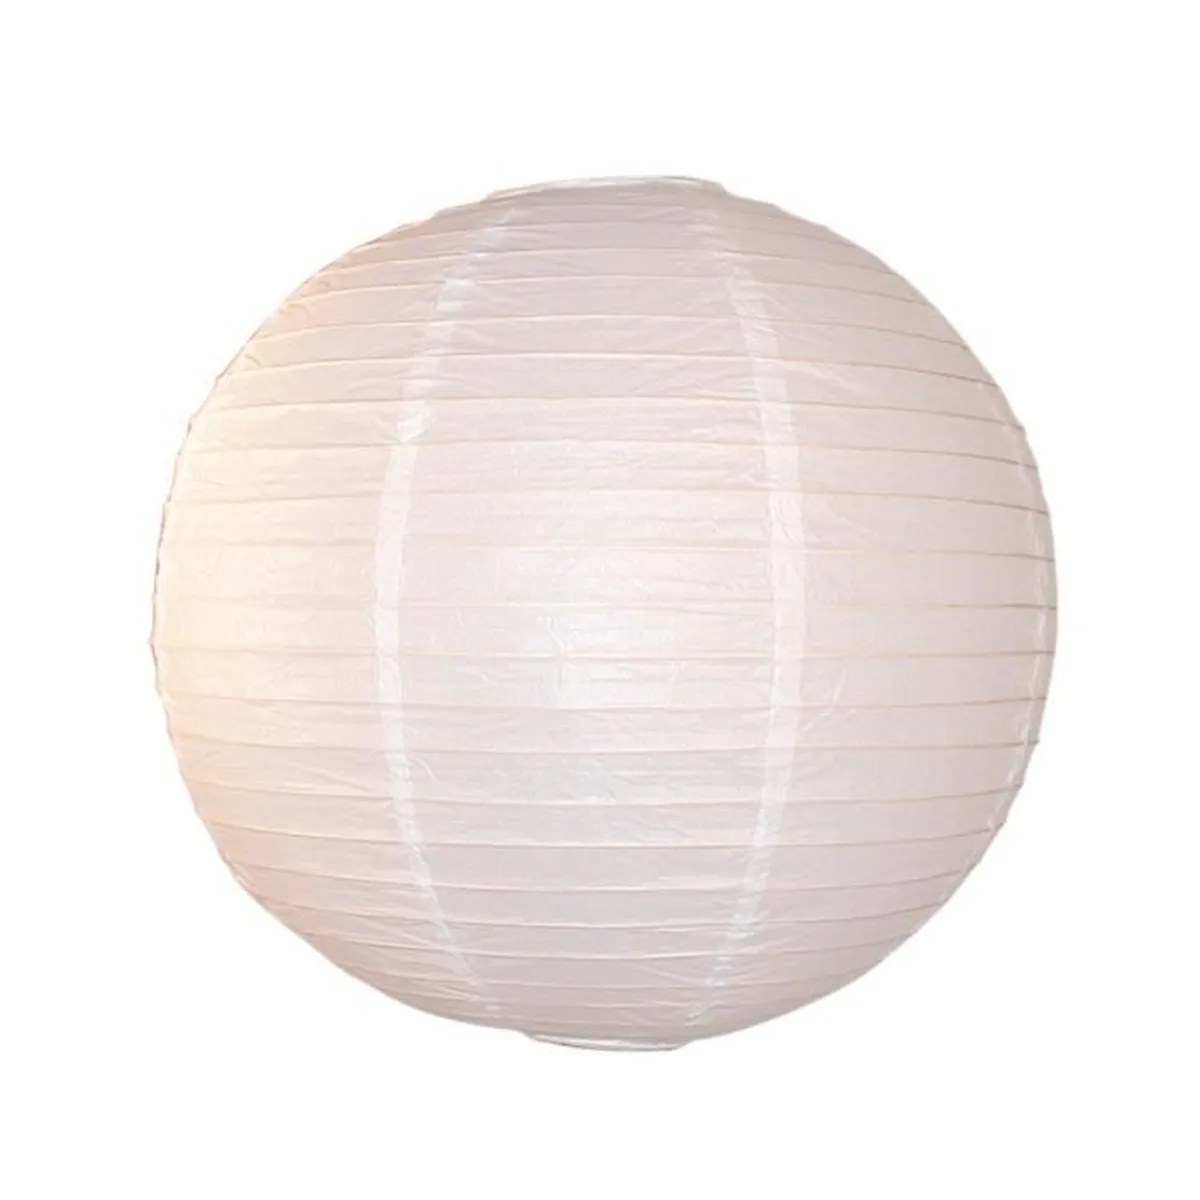 Suspension Papier Boule Suspension Boule Japonaise En Papier Blanc Diamètre 60cm Ball